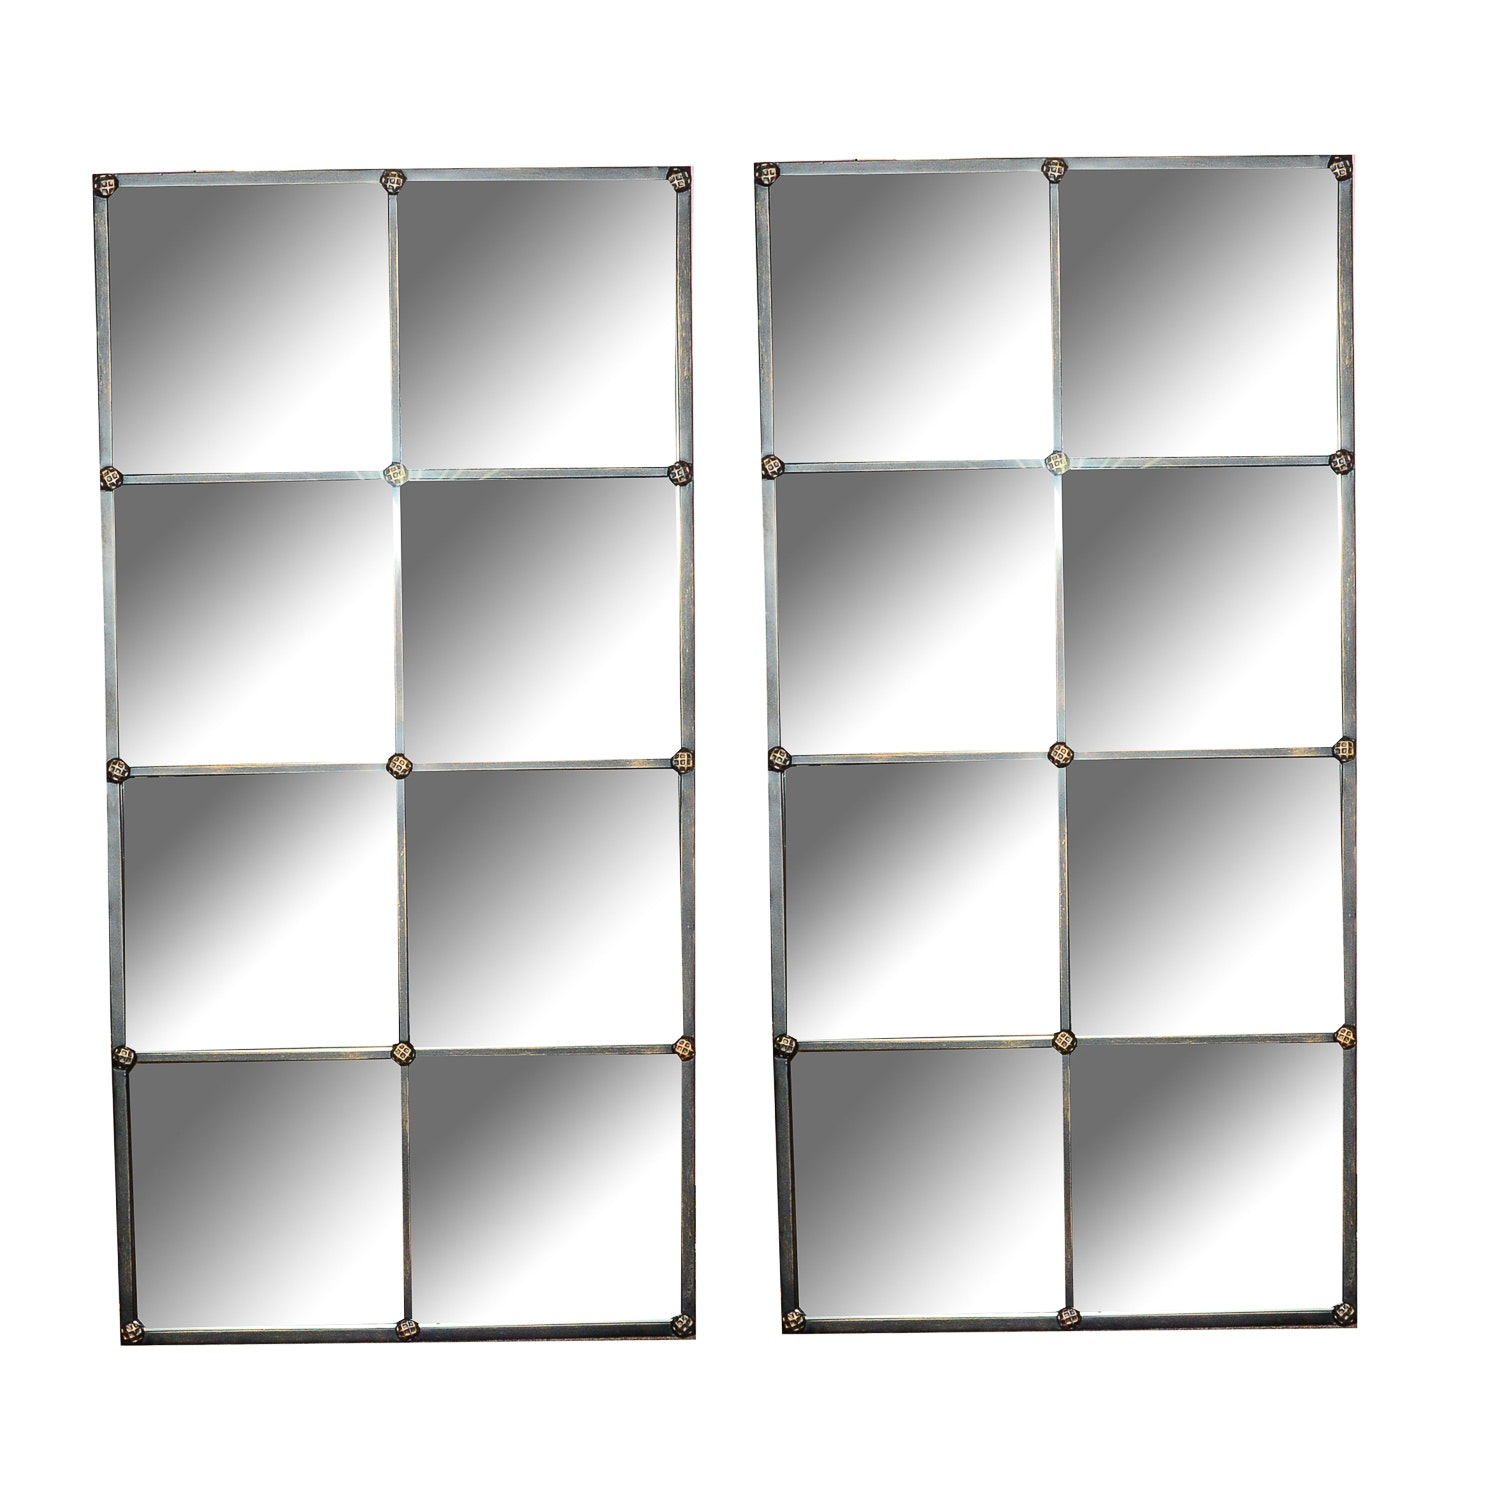 Pair of Ballard Designs Paned Wall Mirrors EBTH